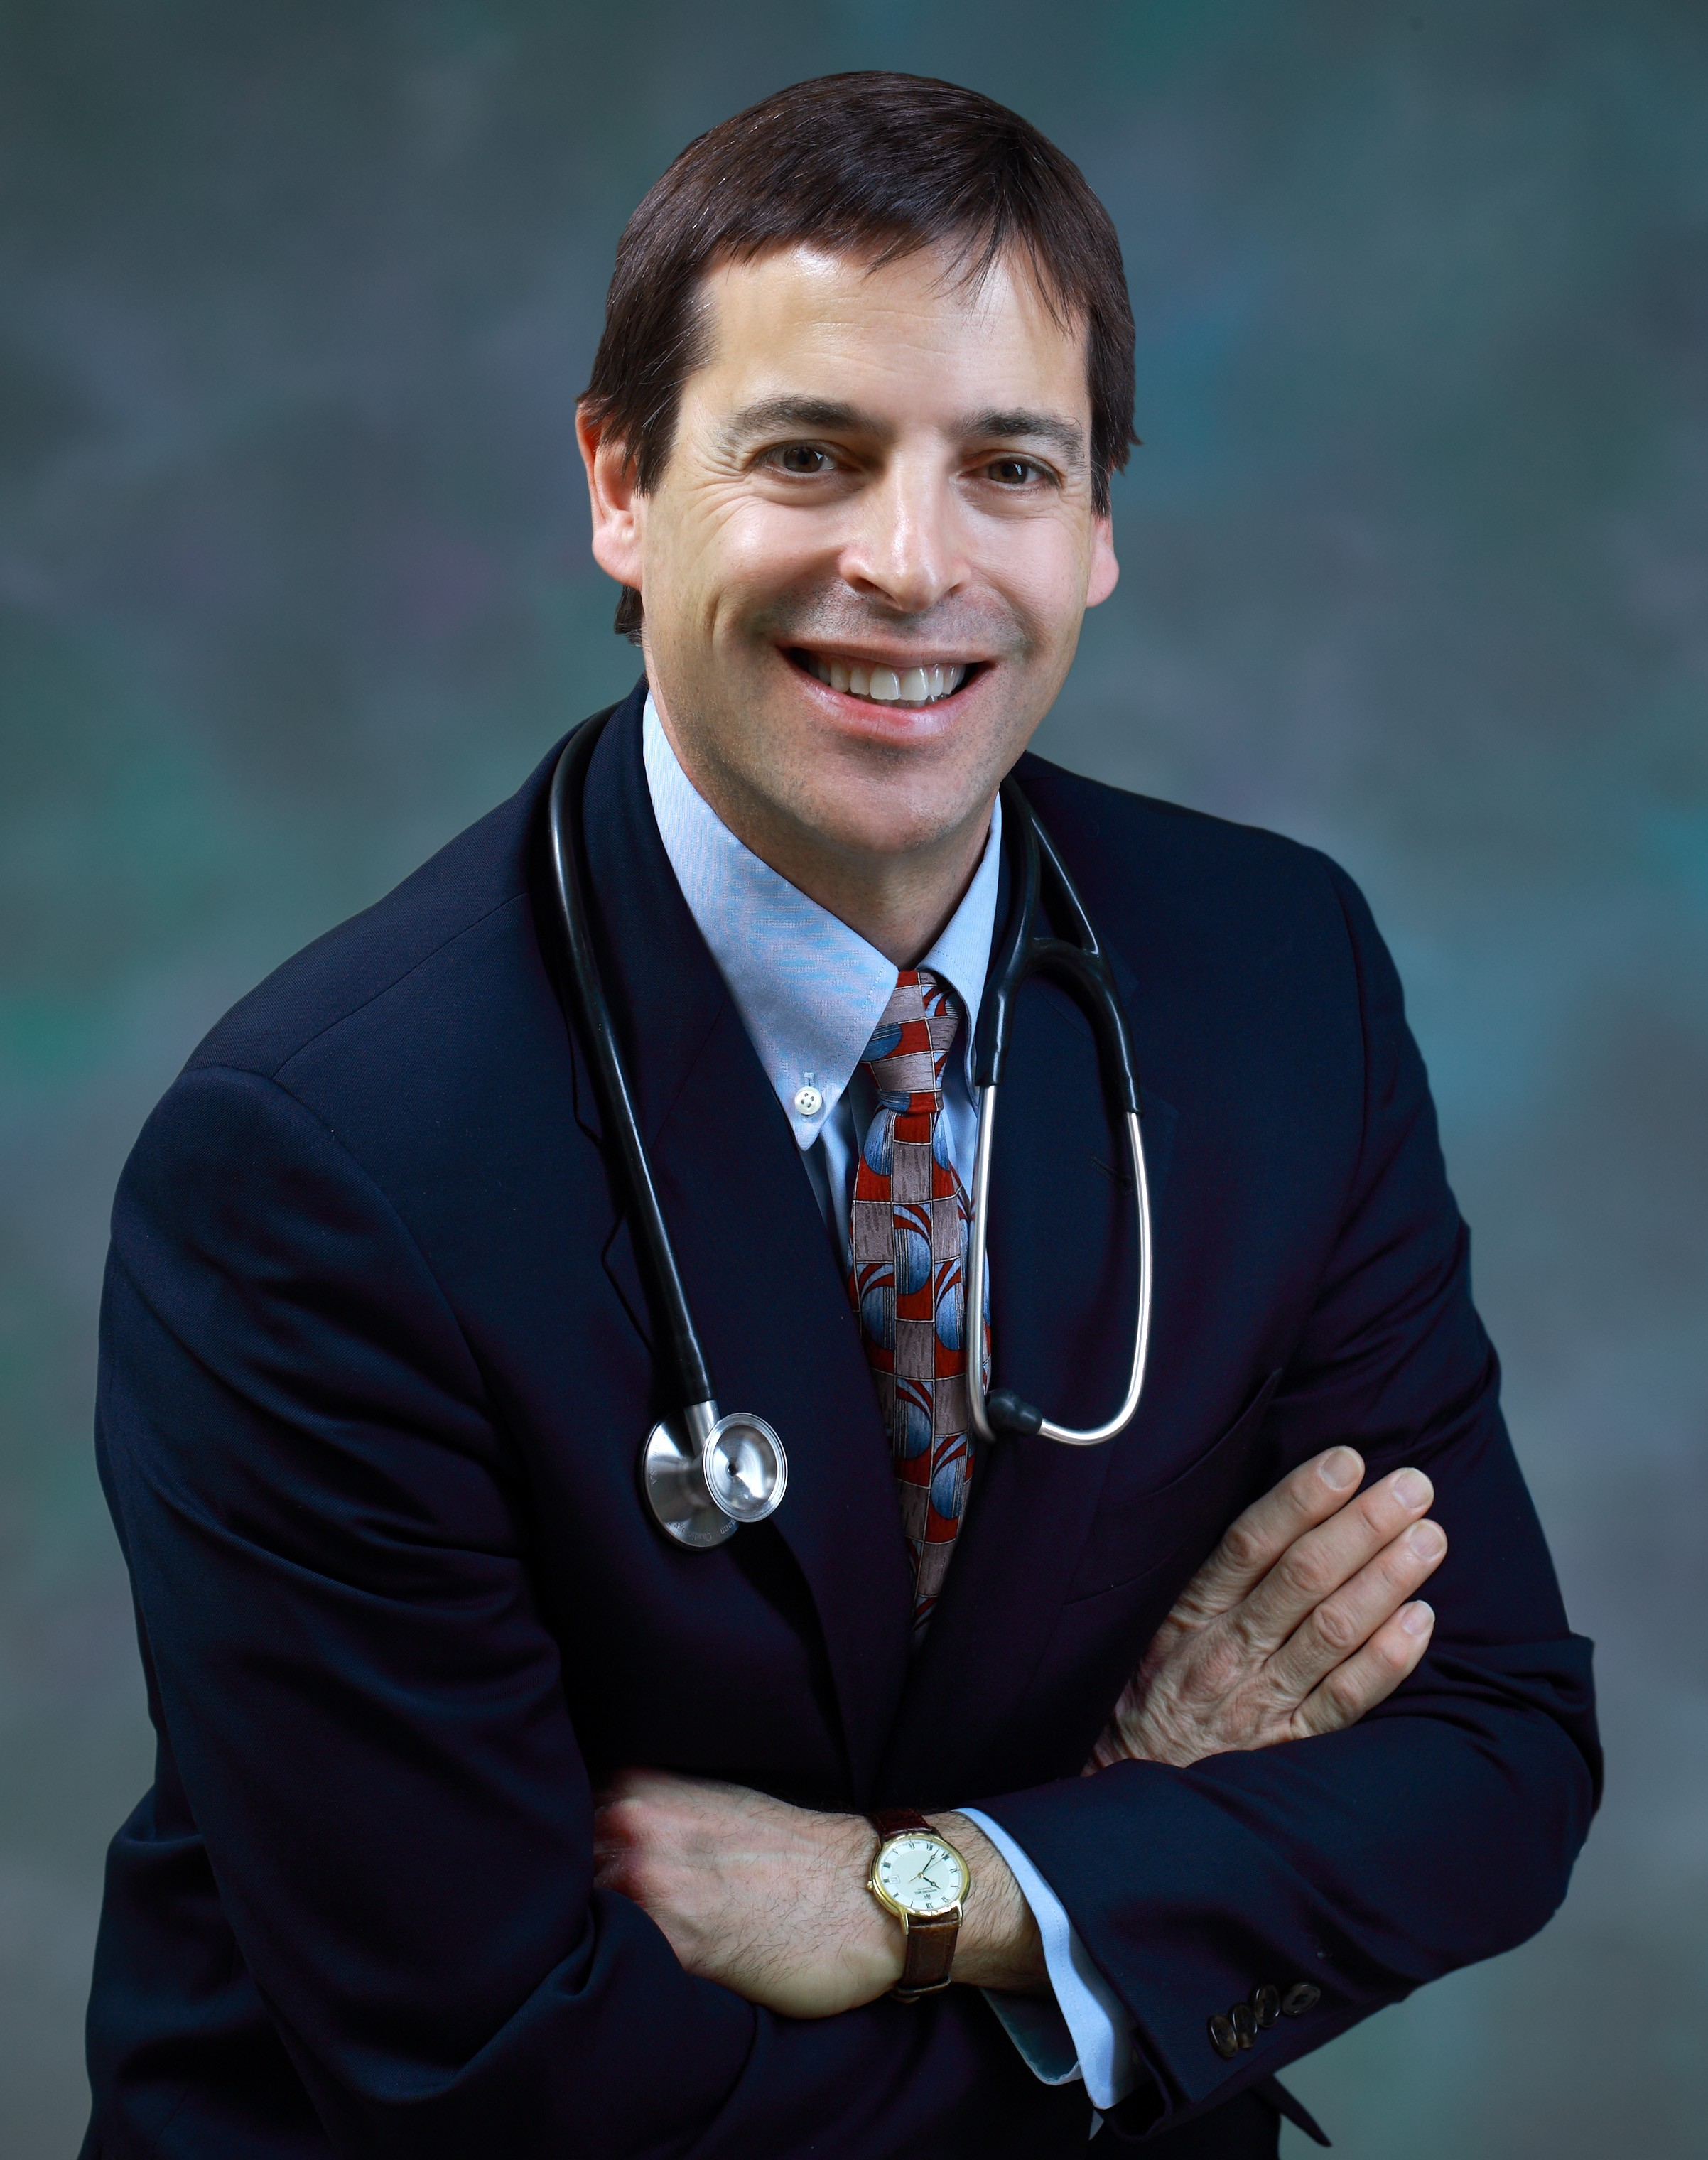 Dr. Matt Narrett, Chief Medical Officer for Erickson Living®